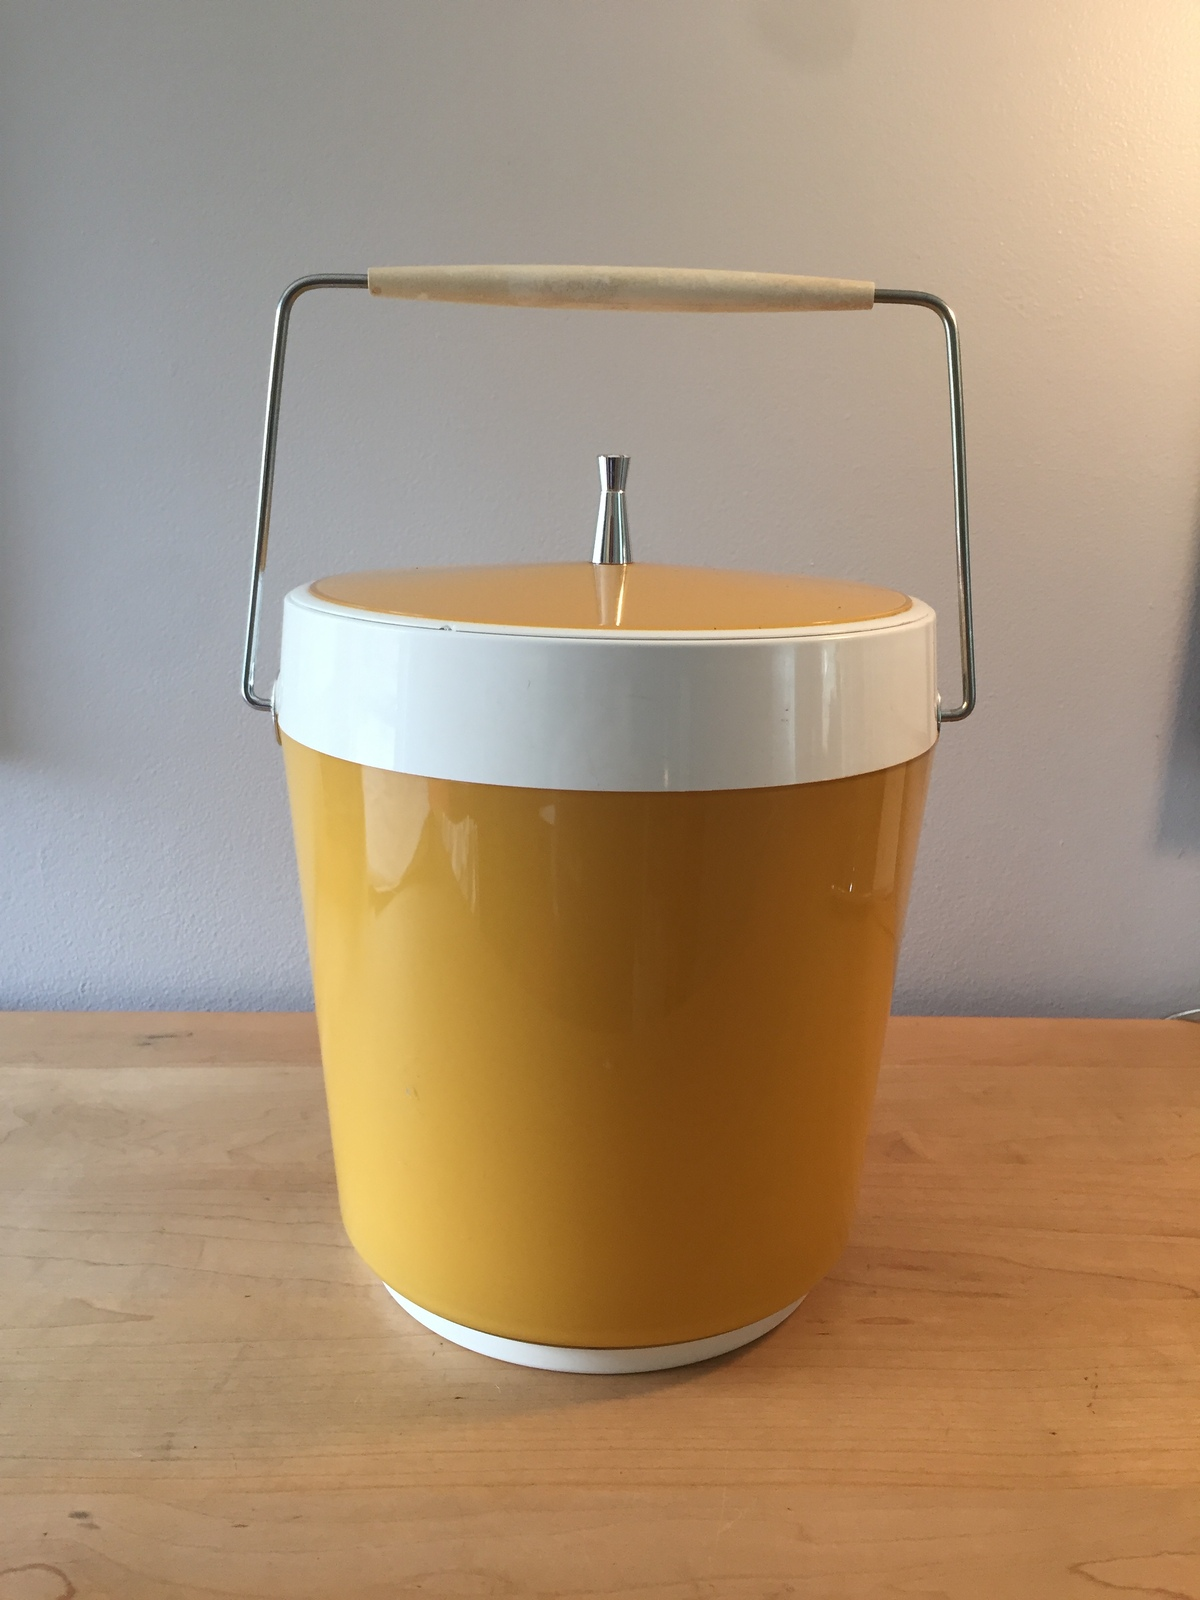 Vintage 70s ice bucket by West Bend (atomic gold/white thermal)